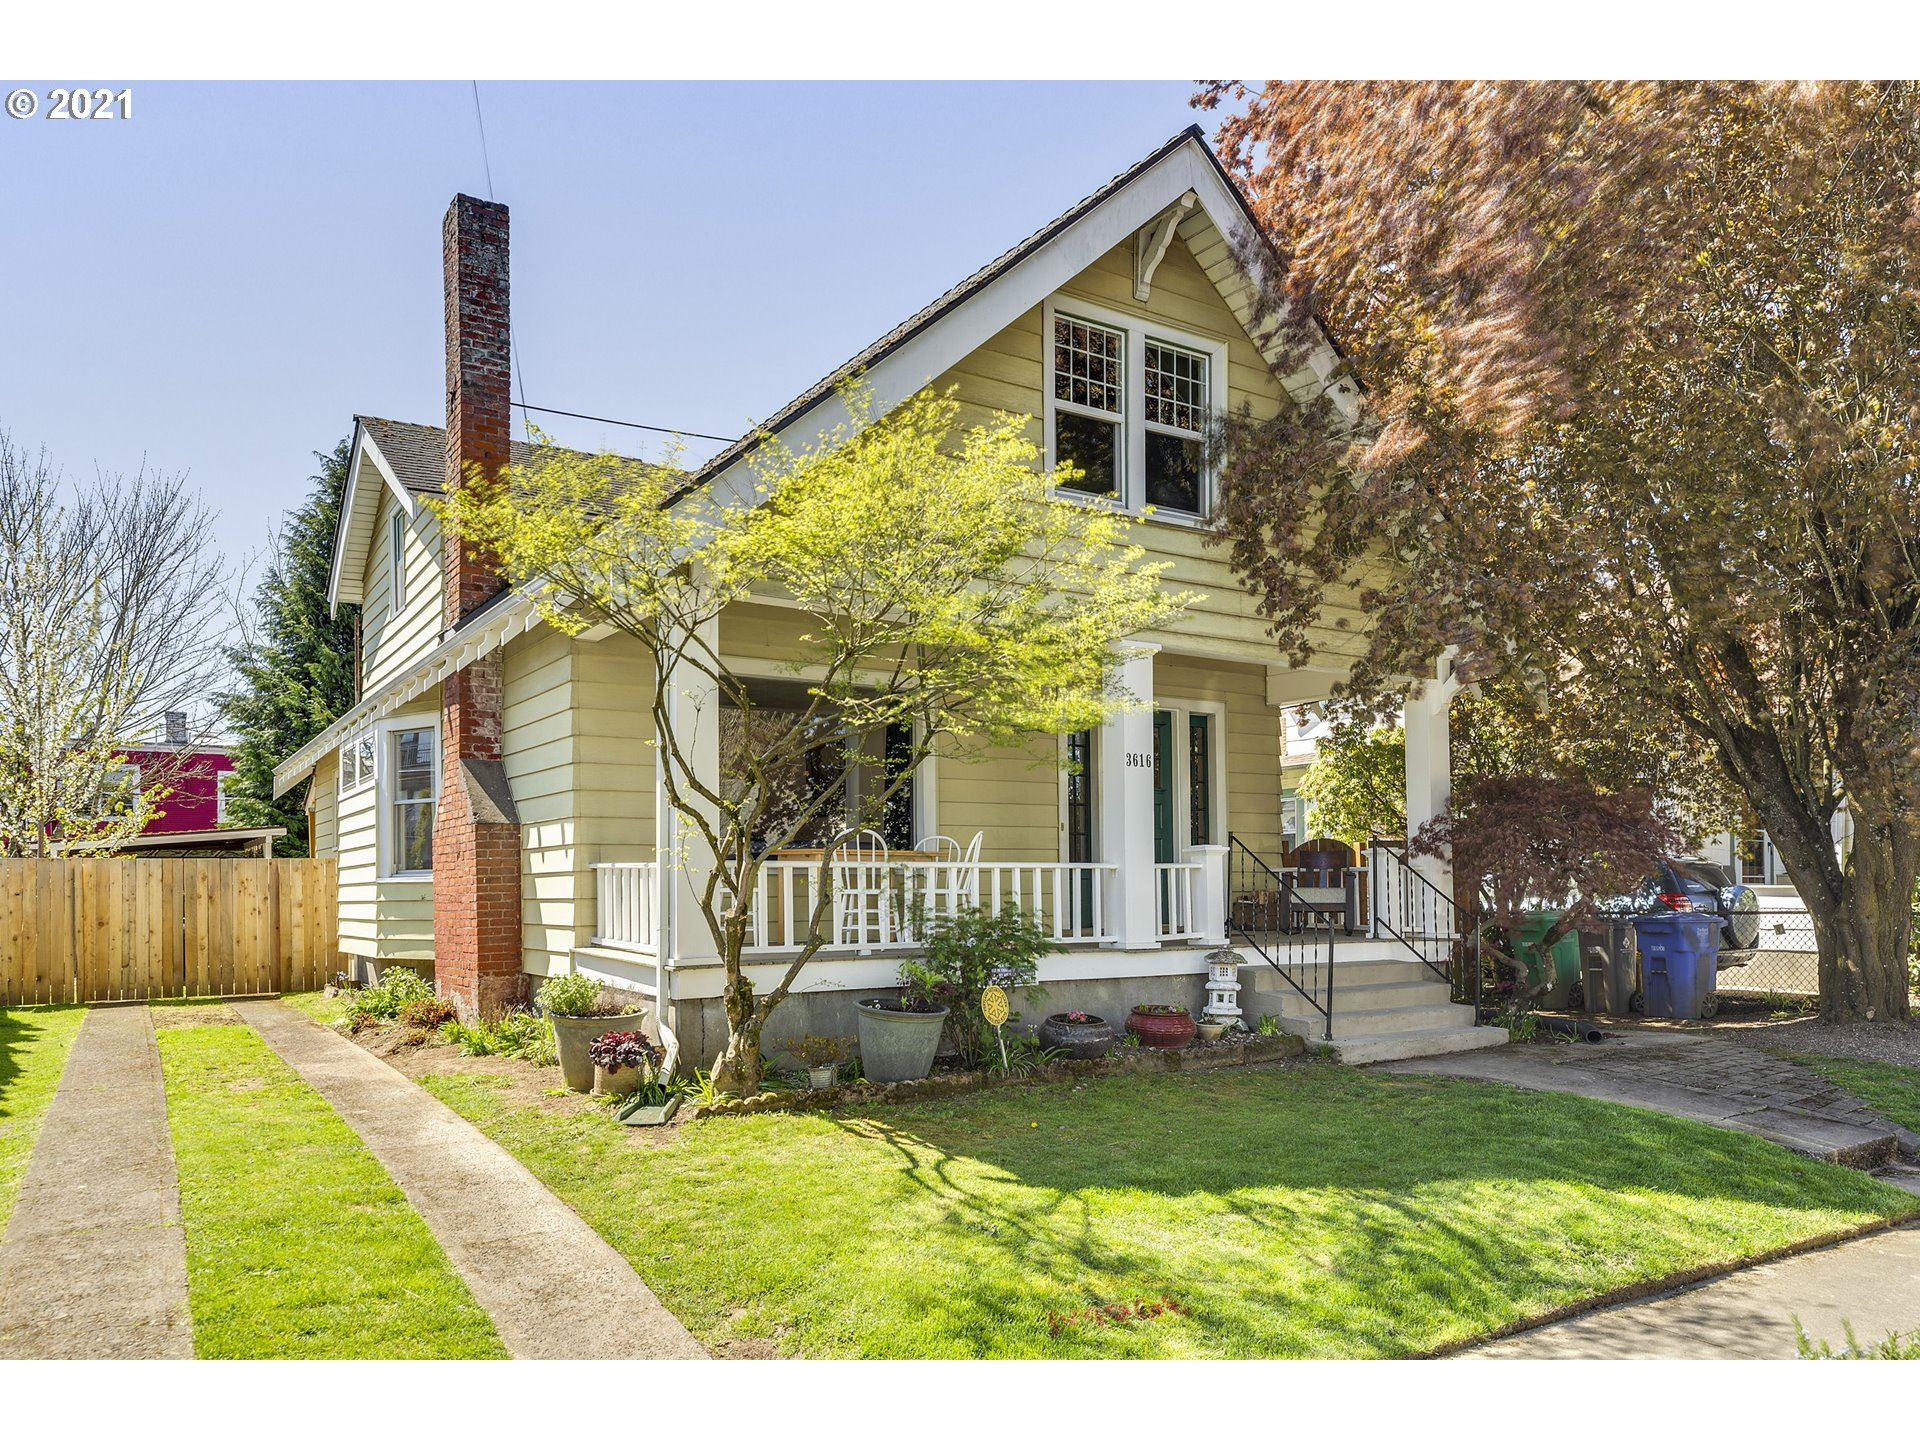 3616 SE CARUTHERS ST, Portland, OR 97214 - MLS#: 21185908